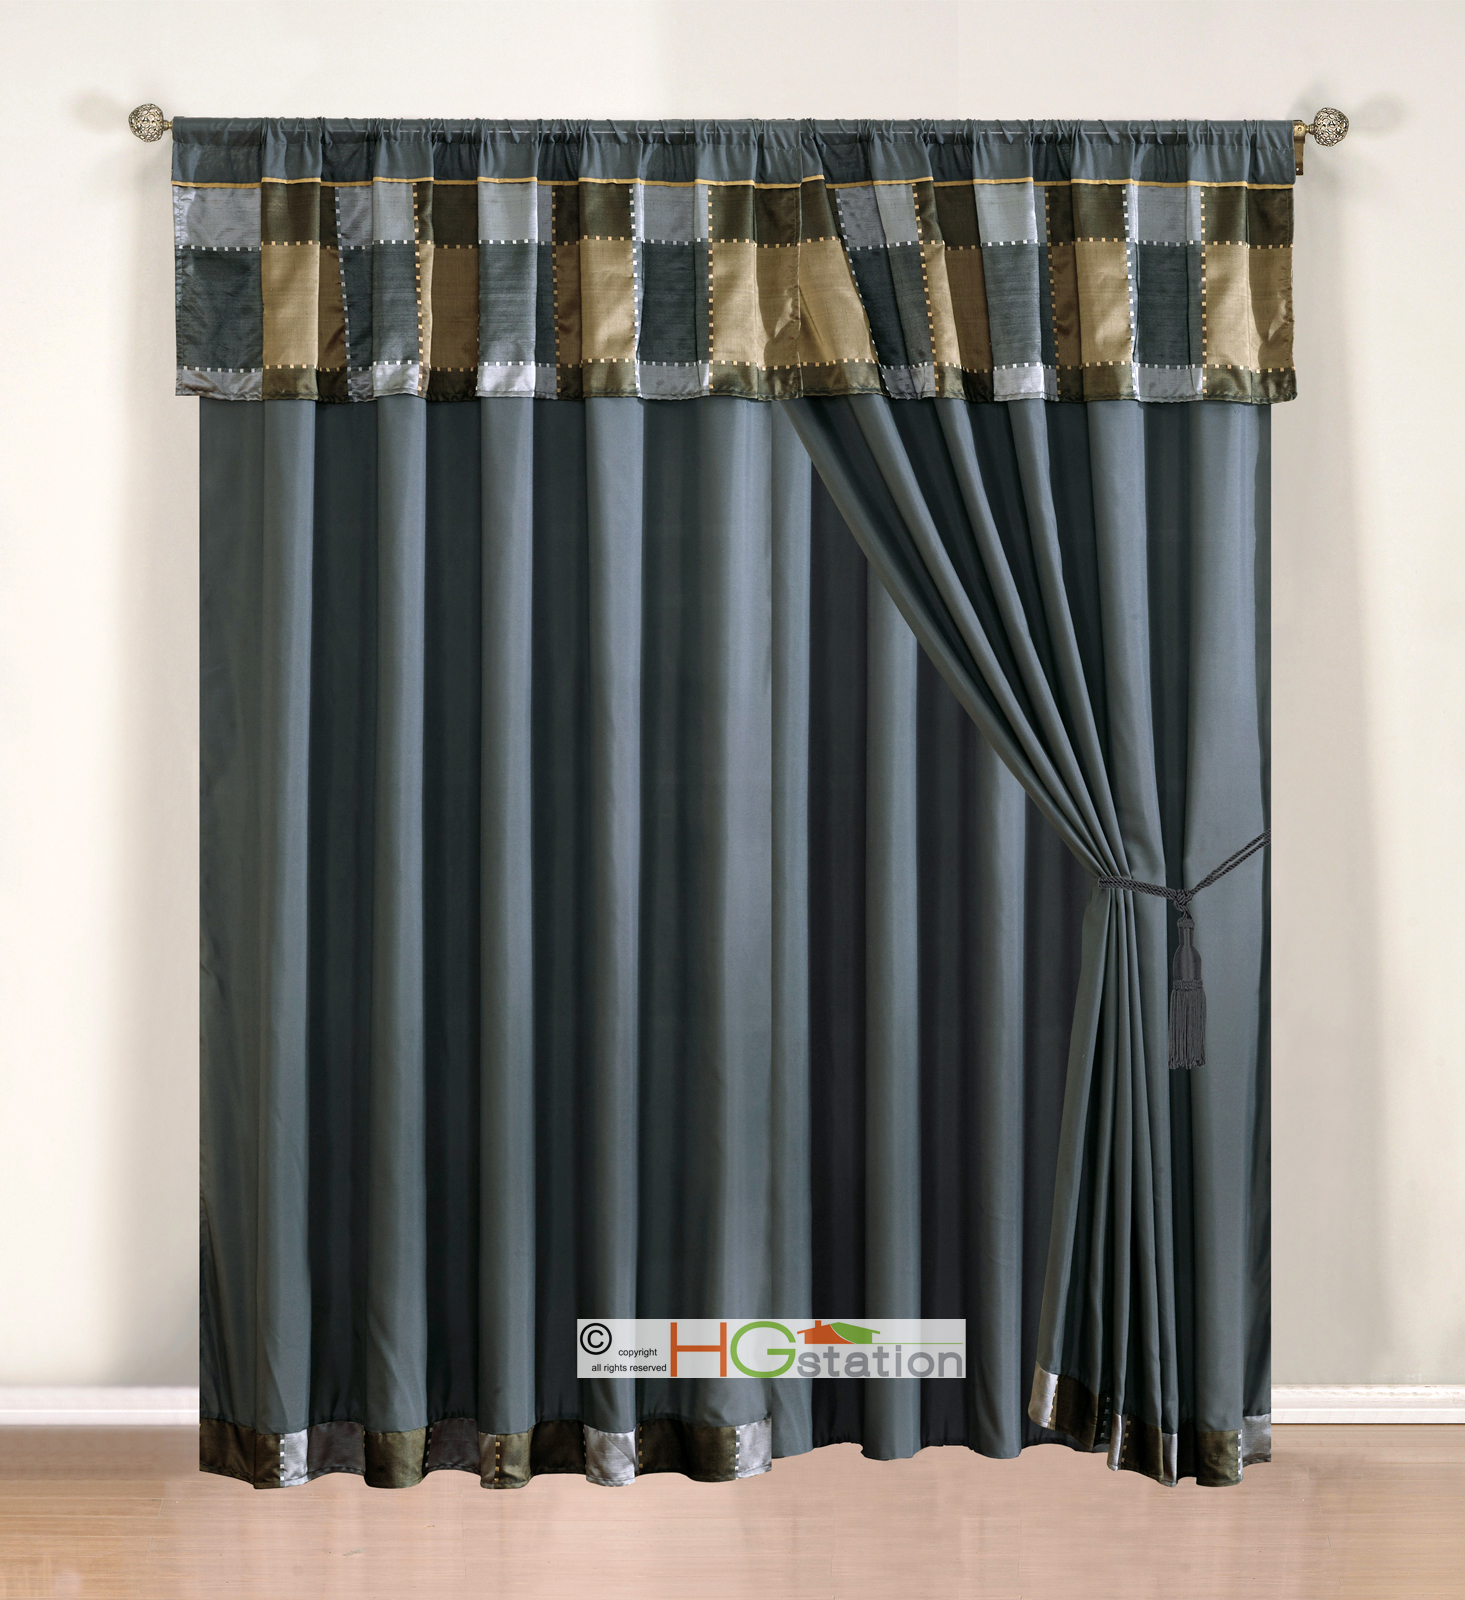 4-Pc Jacquard Patchwork Curtain Set Pewter Silver Gray